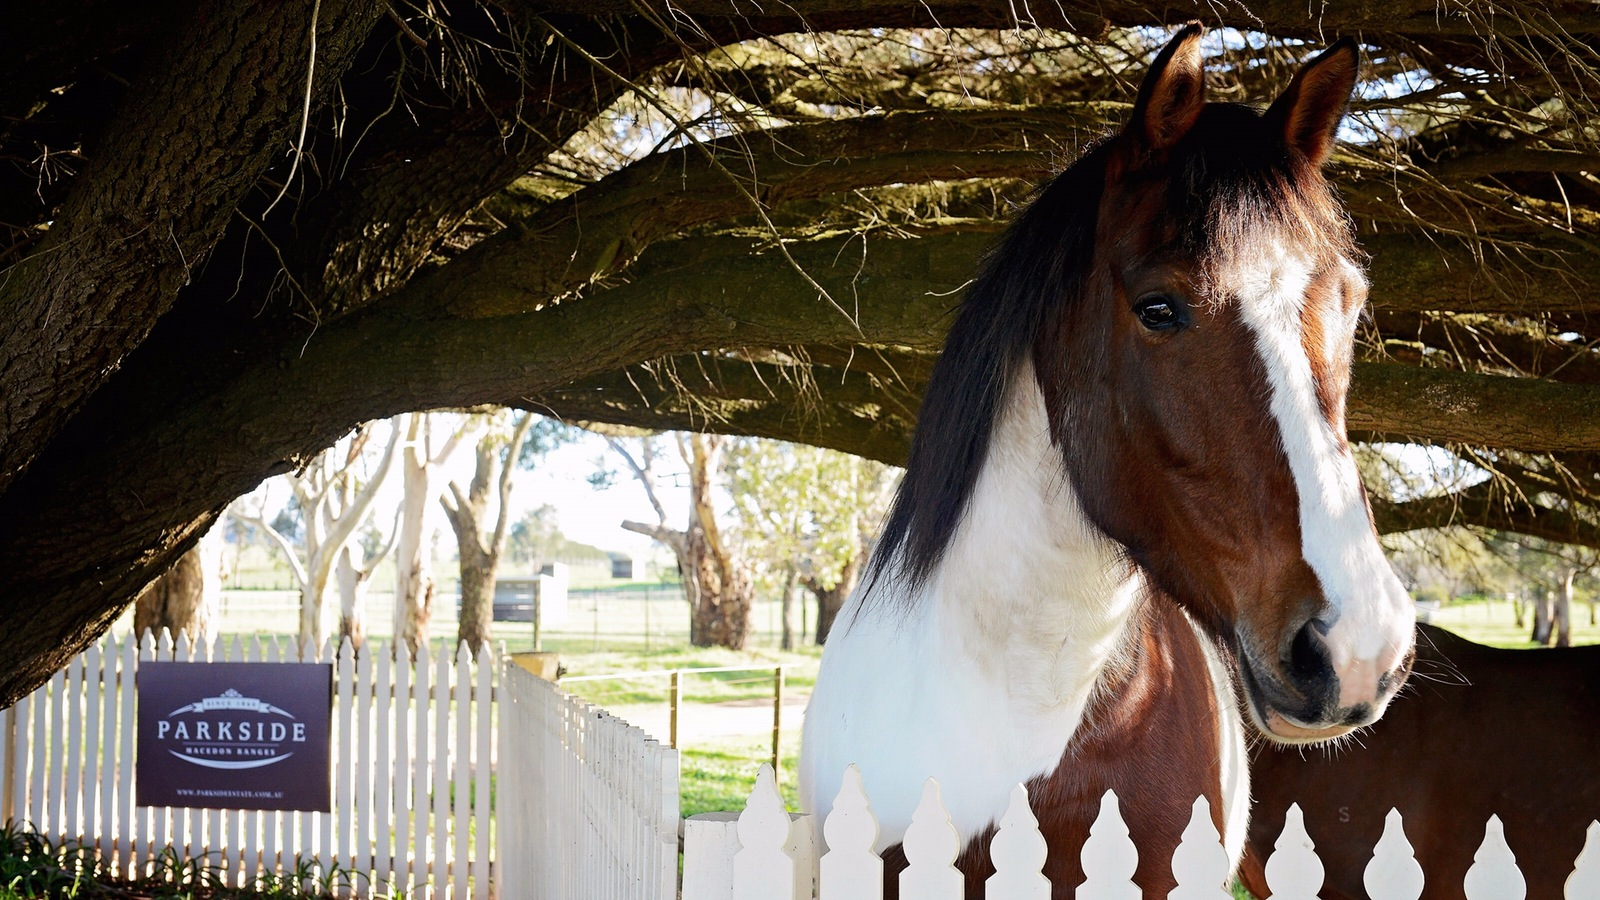 Meet Miss Poppy a member of the Parkside horse family who you can introduce yourself to